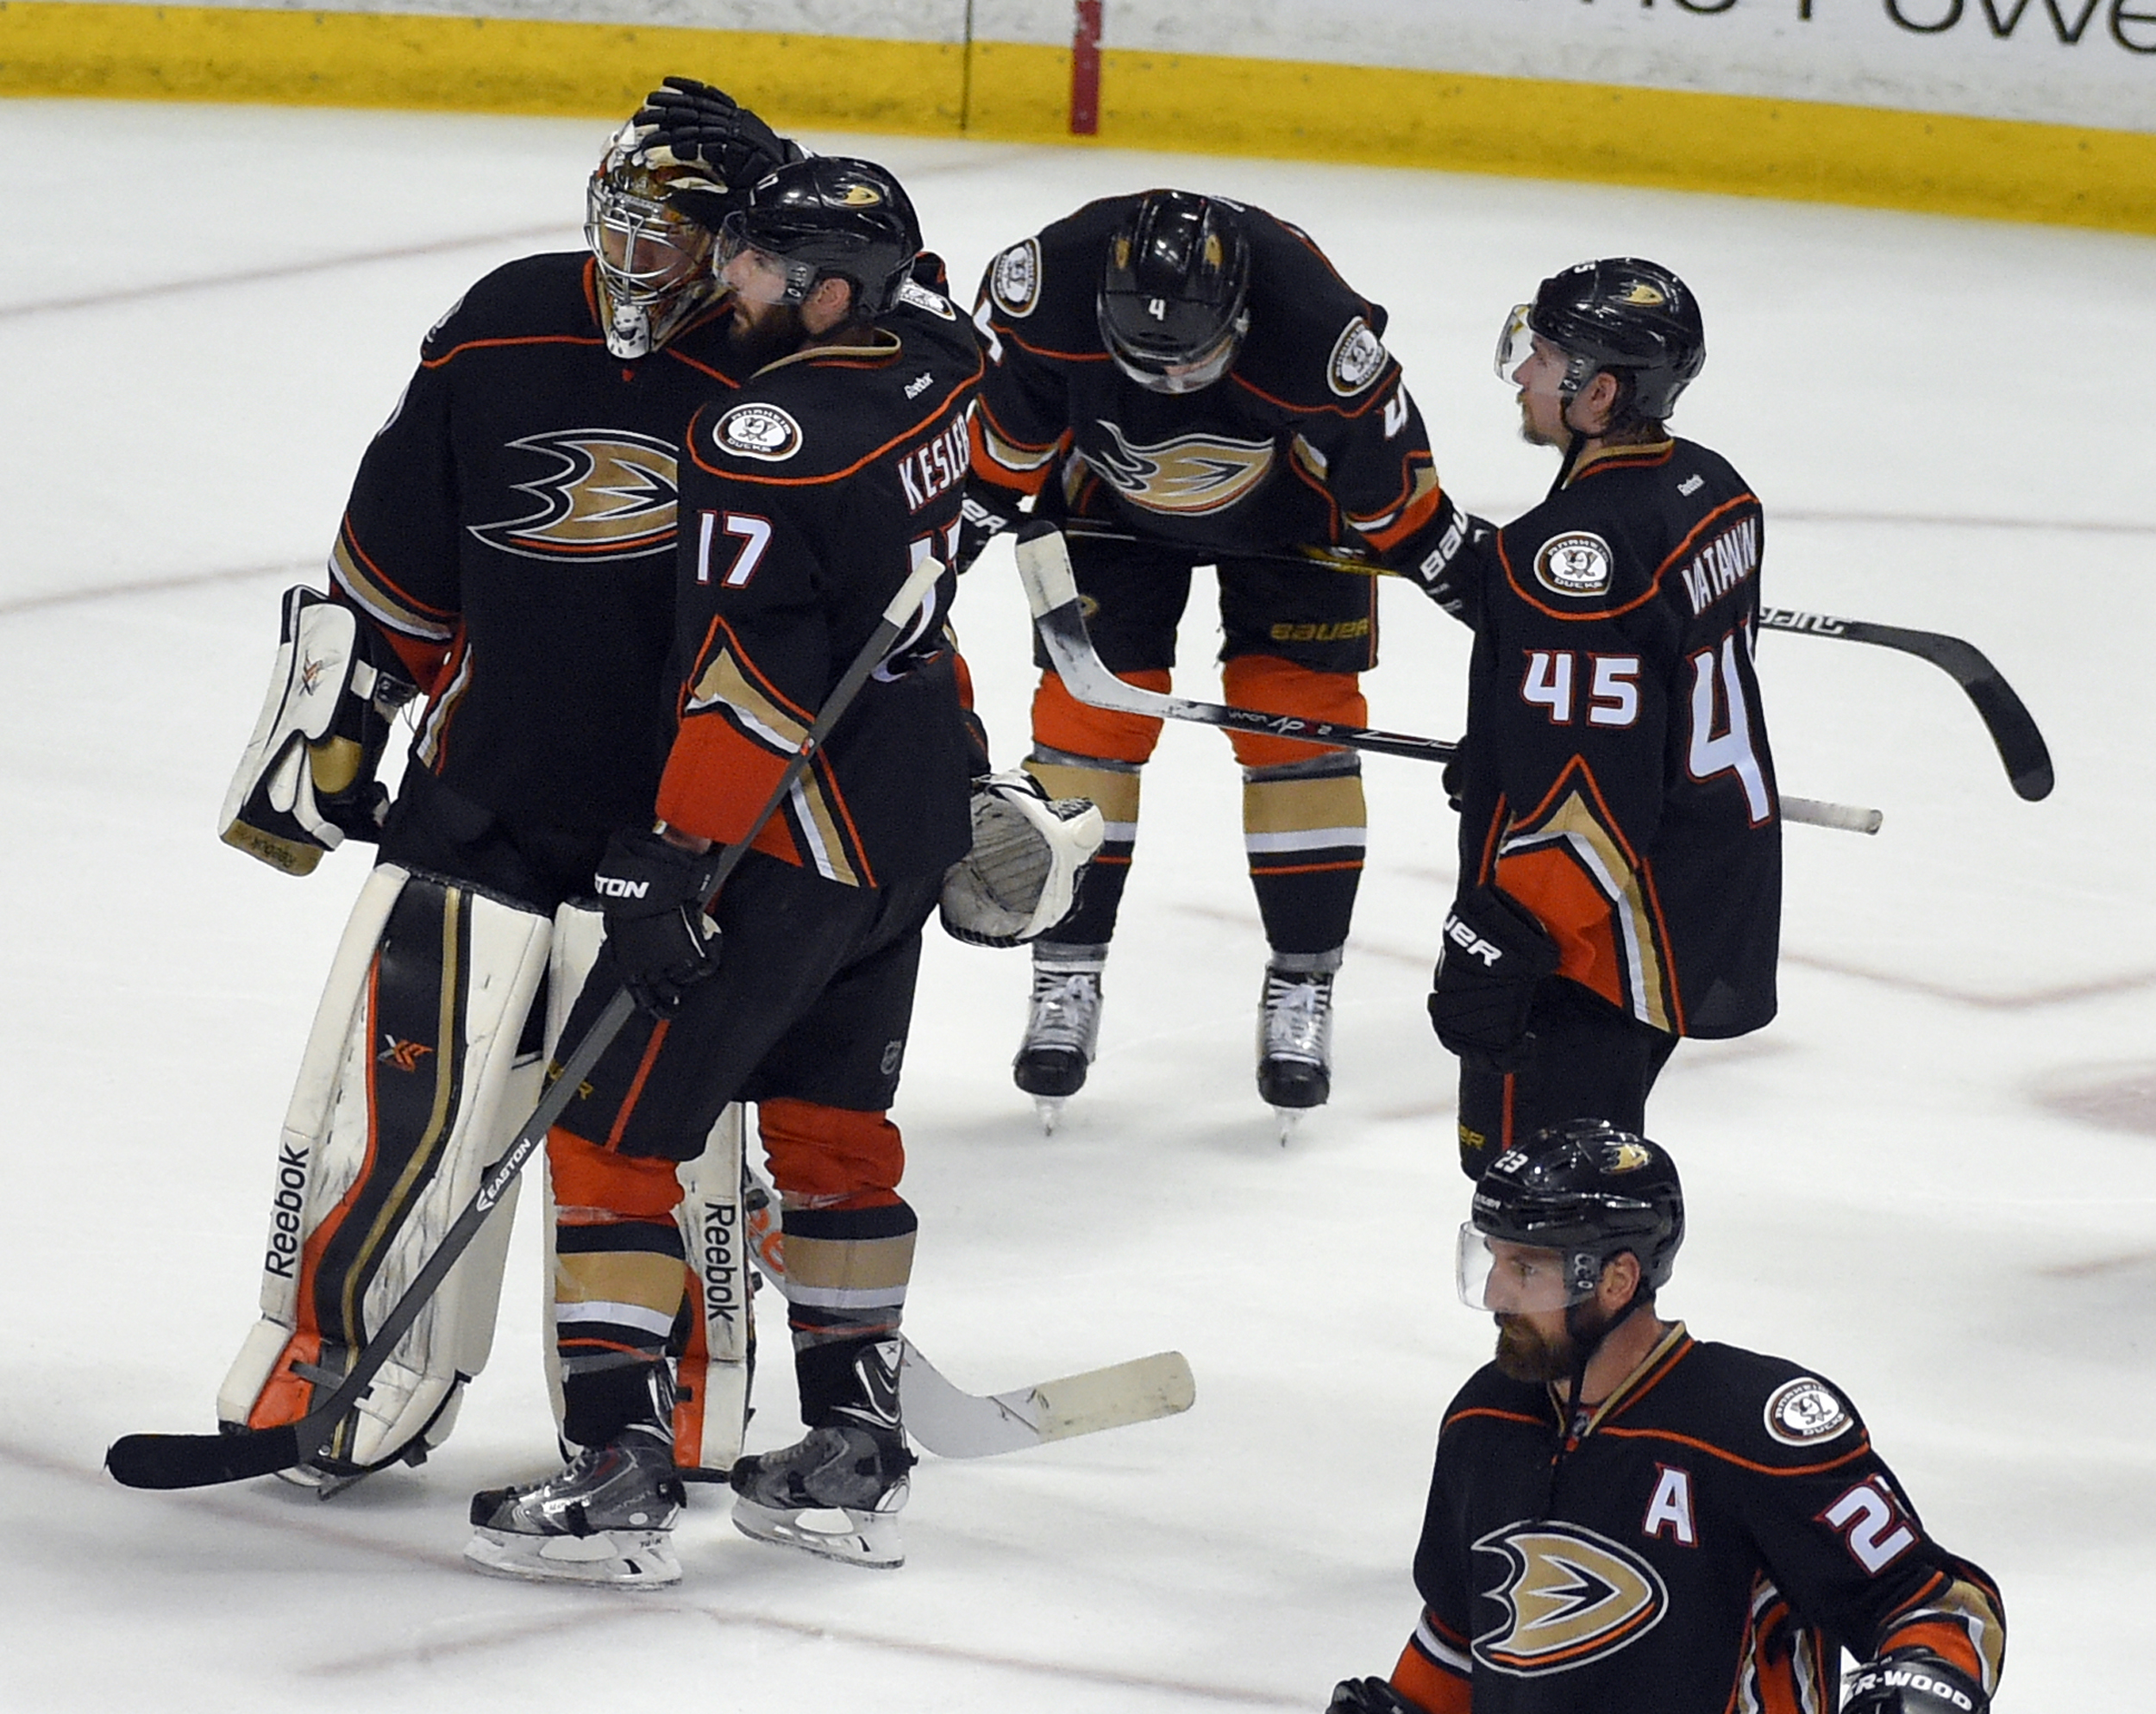 Members of the Anaheim Ducks react to their loss against the Chicago Blackhawks in Game 7 of the Western Conference final of the NHL hockey Stanley Cup playoffs in Anaheim, Calif., Saturday, May 30, 2015. The Blackhawks won 5-3 to advance to Stanley Cup F